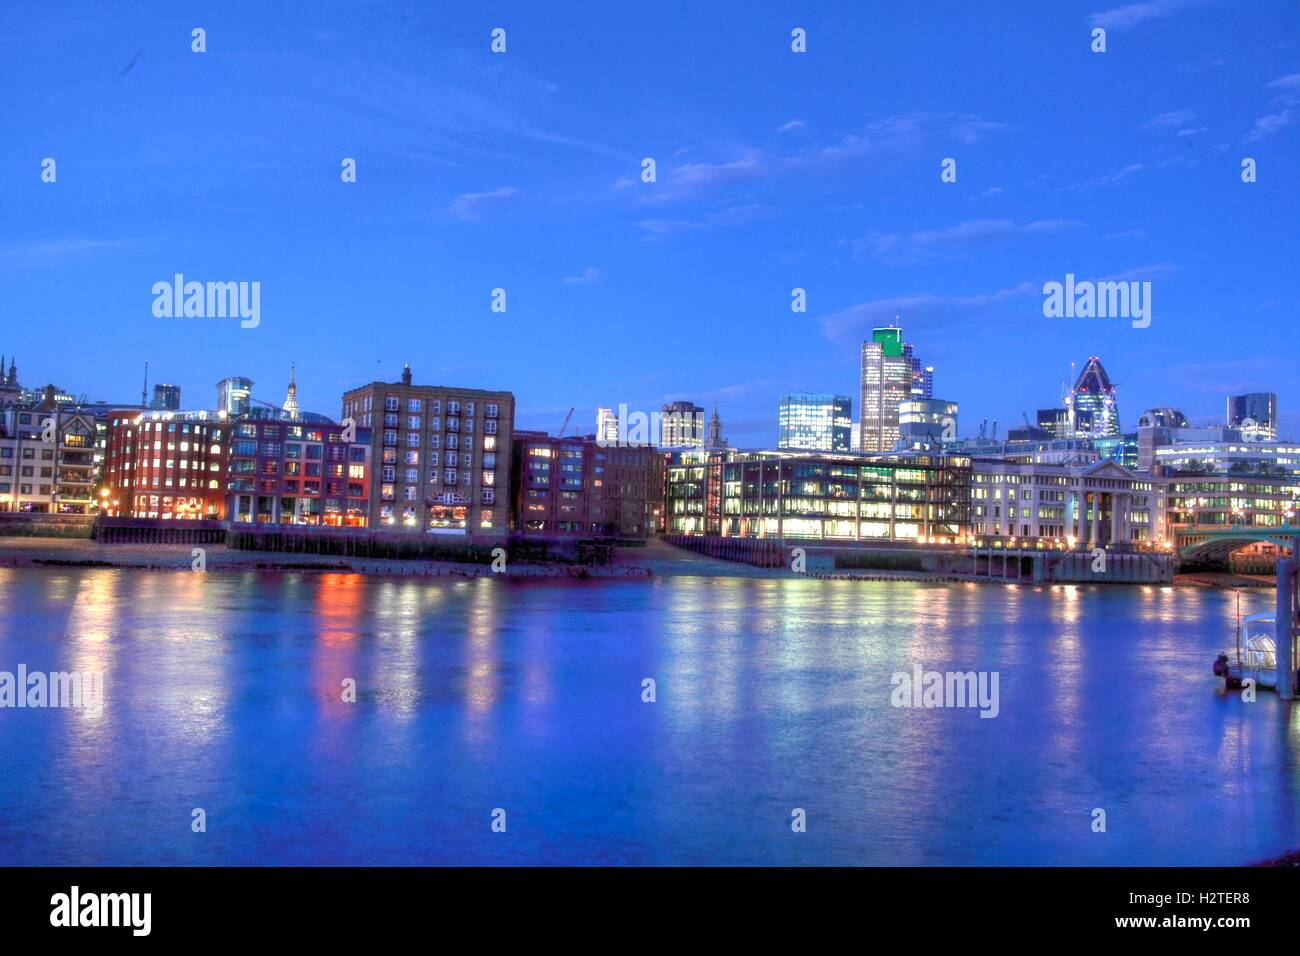 River Thames Panorama, London, England - Stock Image